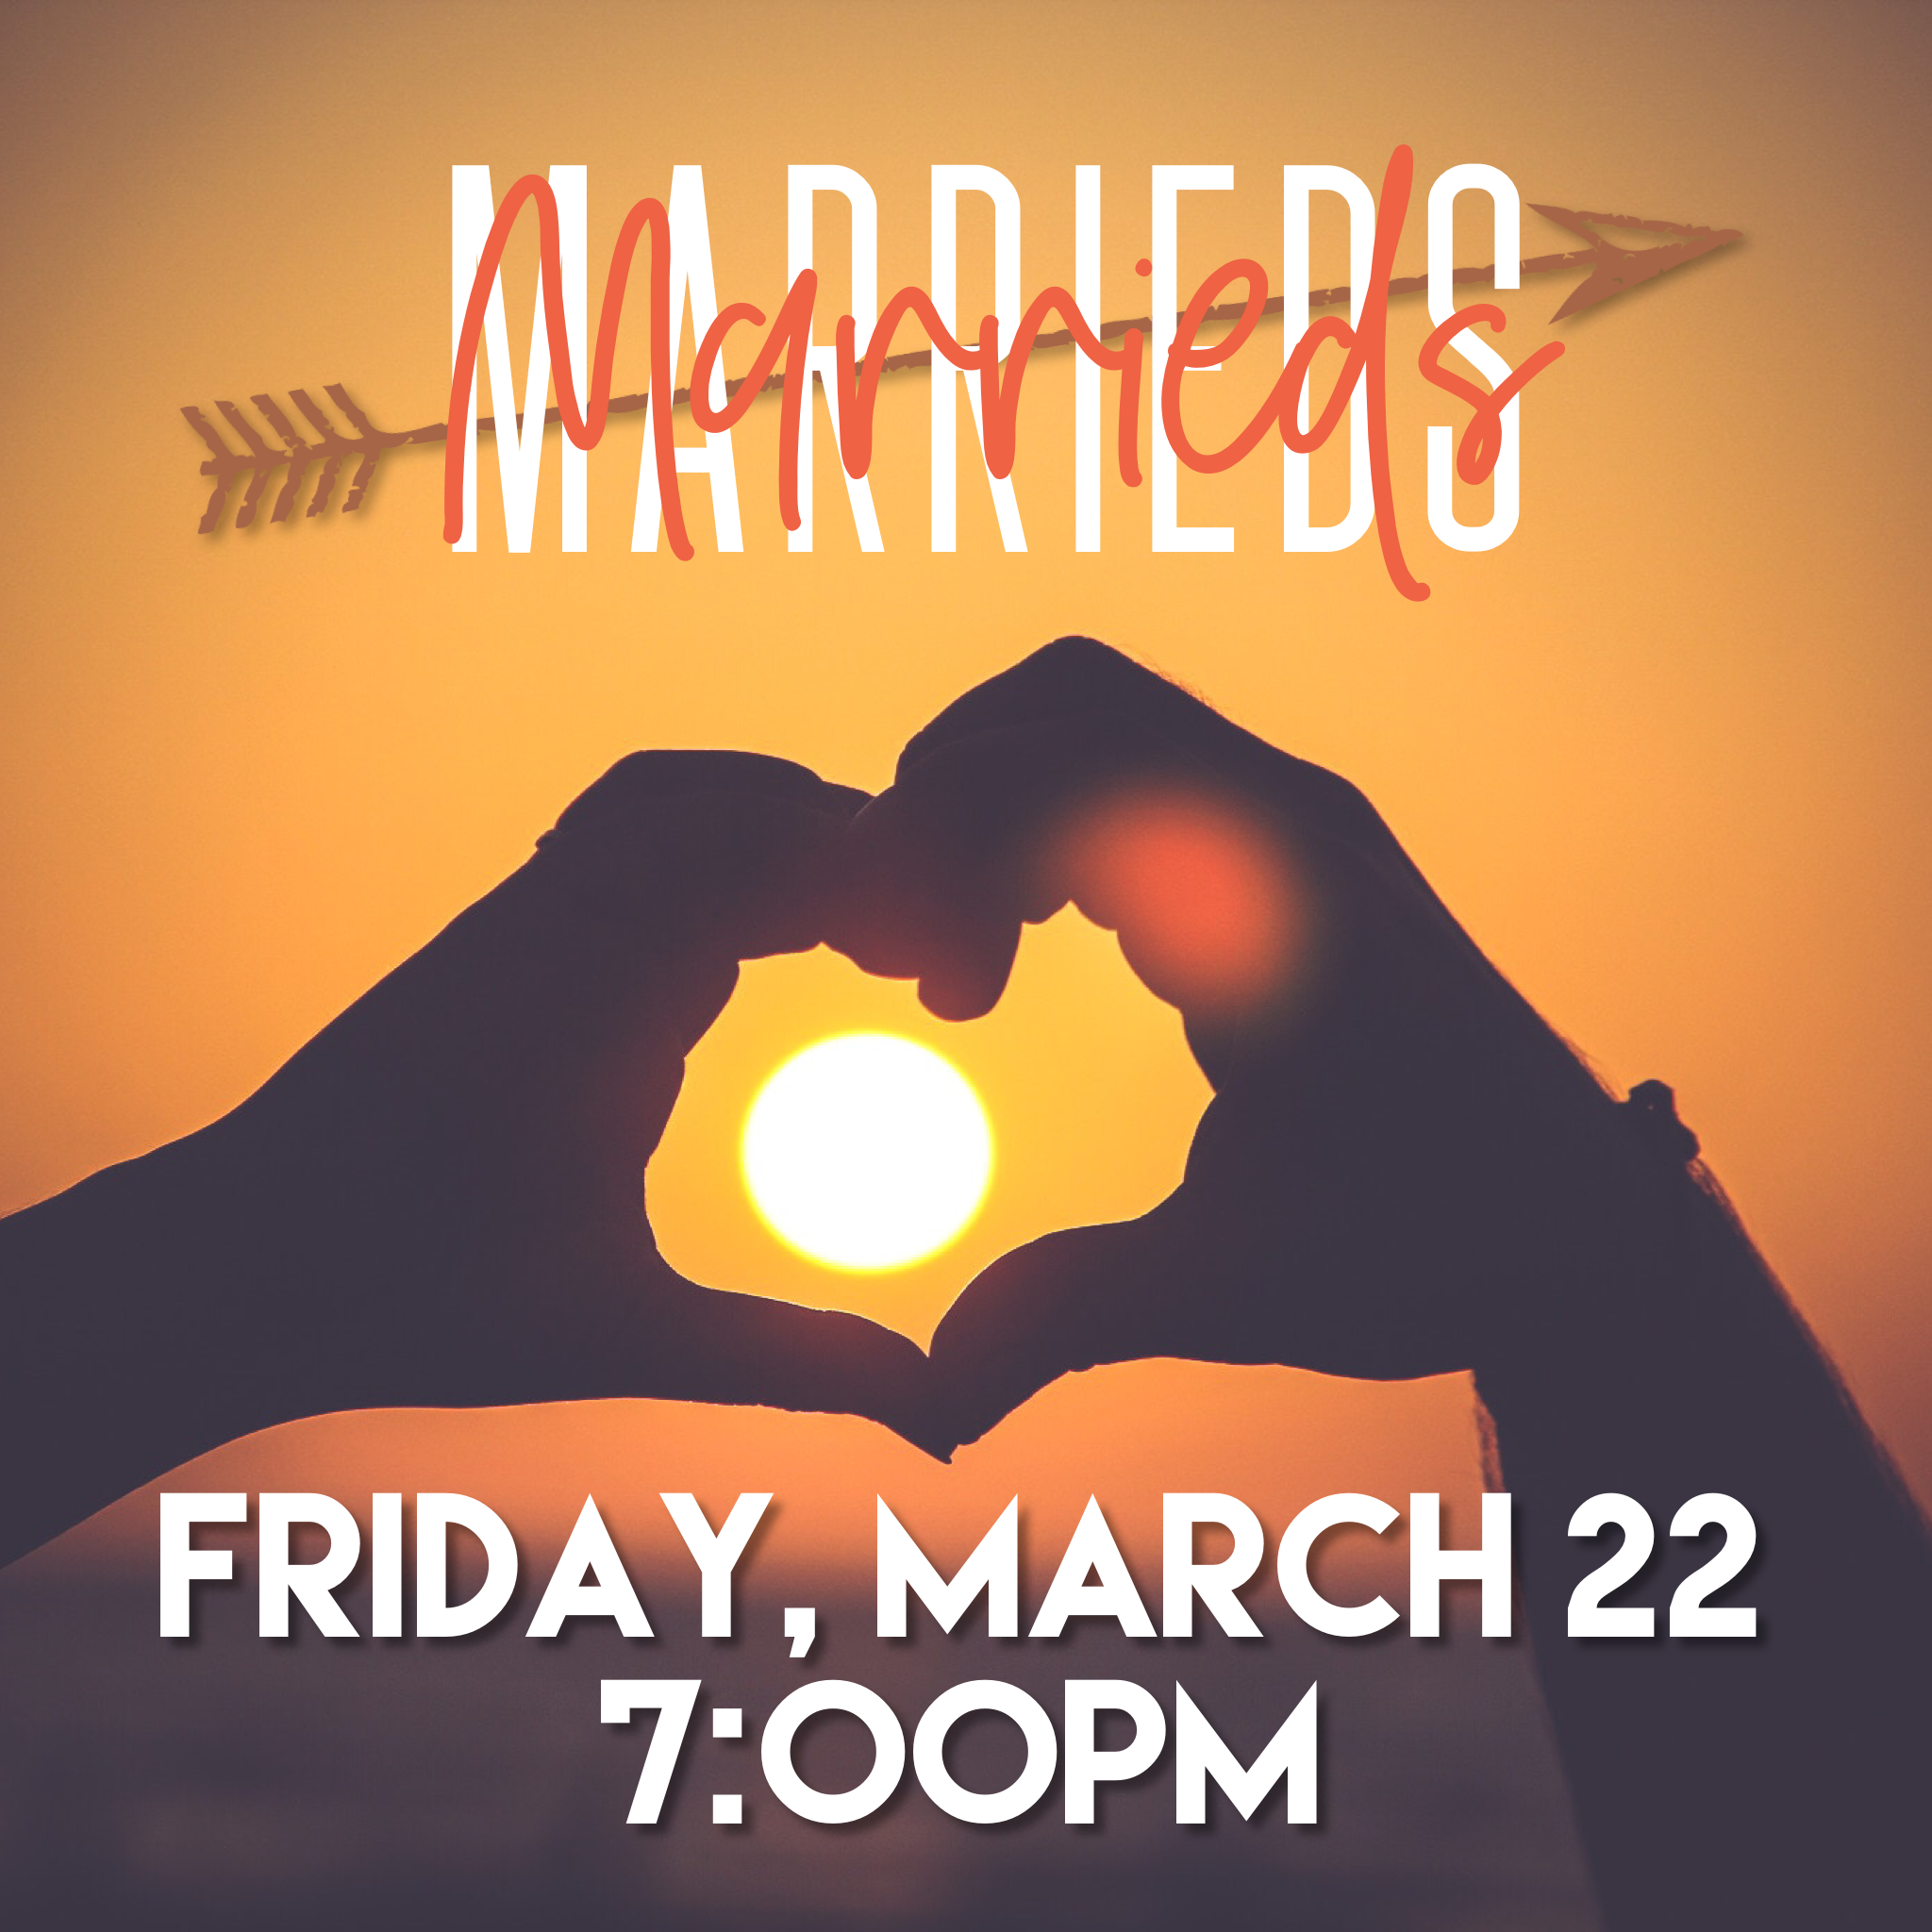 Marrieds Night - Friday, March 25th 7:00 pmPastor Matt & Ginger McLamb's Home5541 West Saguaro DriveGlendale, AZ 85304